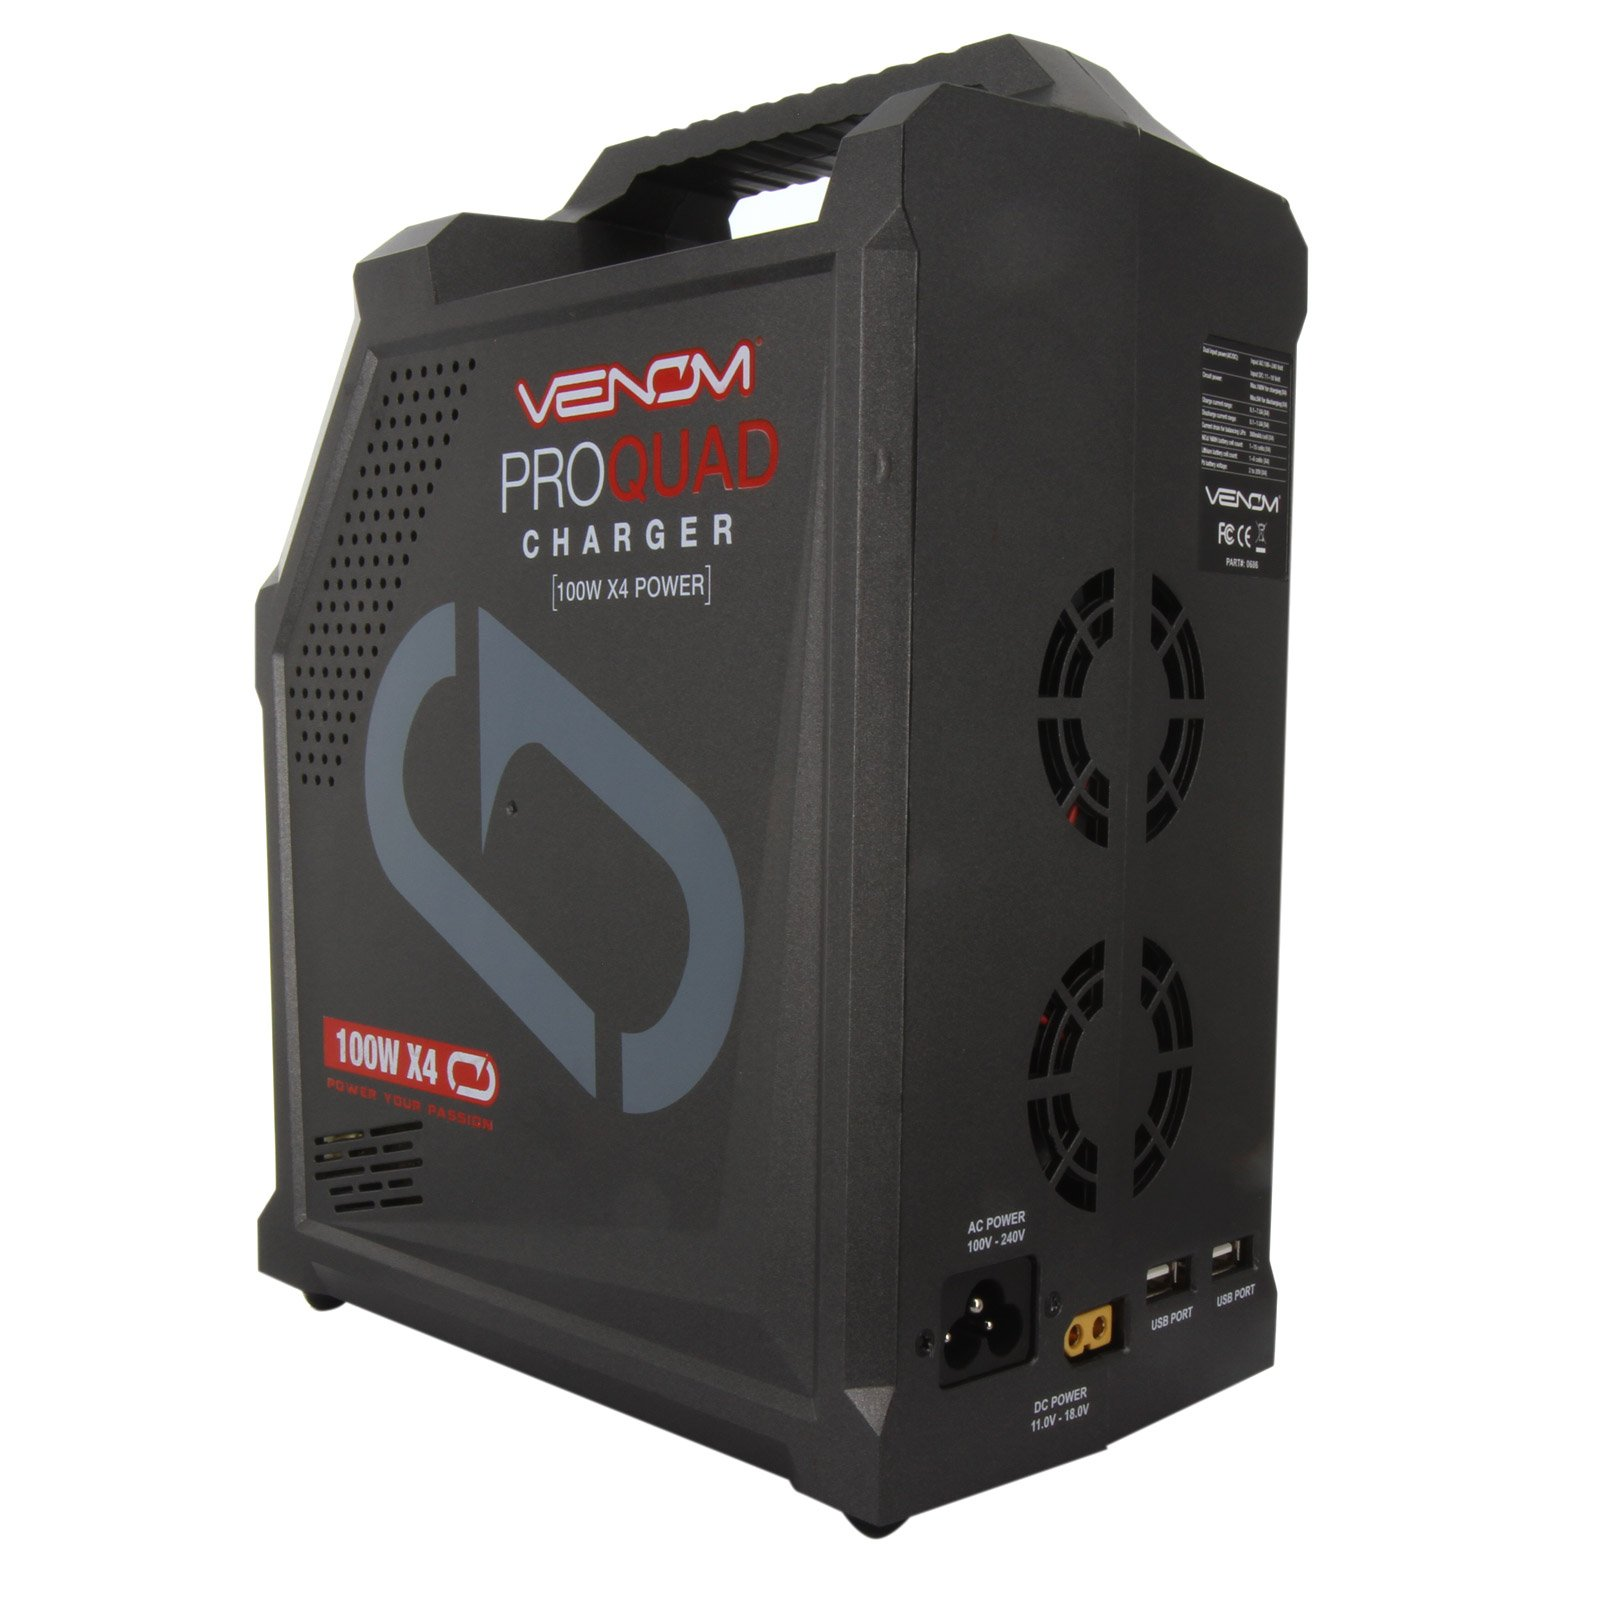 Venom Pro Quad 400 Watt (100W x 4) 7 Amp 4-Port AC/DC Multi-Chemistry LiPo, LiHV, NiMH Battery Balance Charger with Two 5V 2.3A USB Outputs with XT60, Deans, HXT, Tamiya, EC3, JST by Venom RC (Image #4)